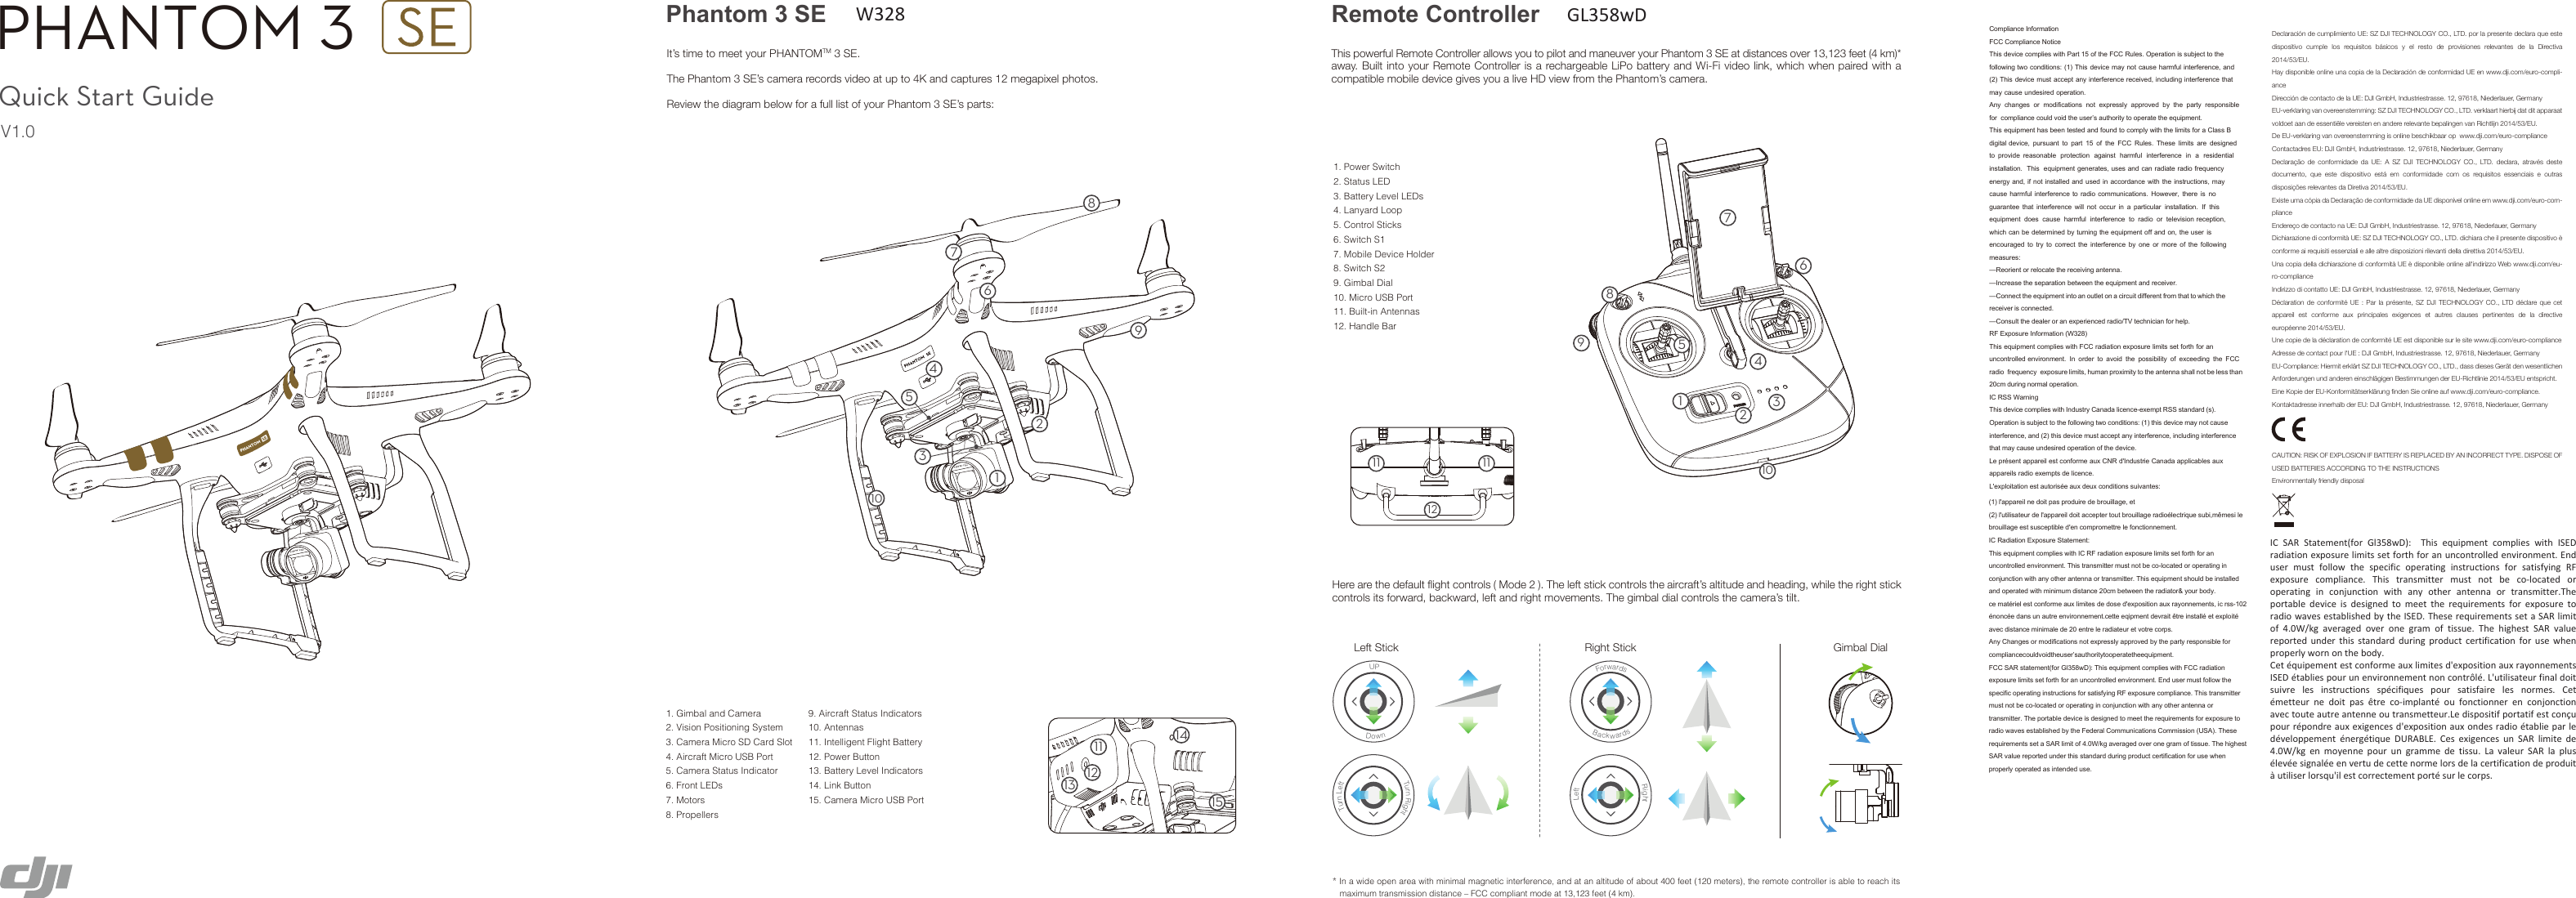 dji phantom standard user manual